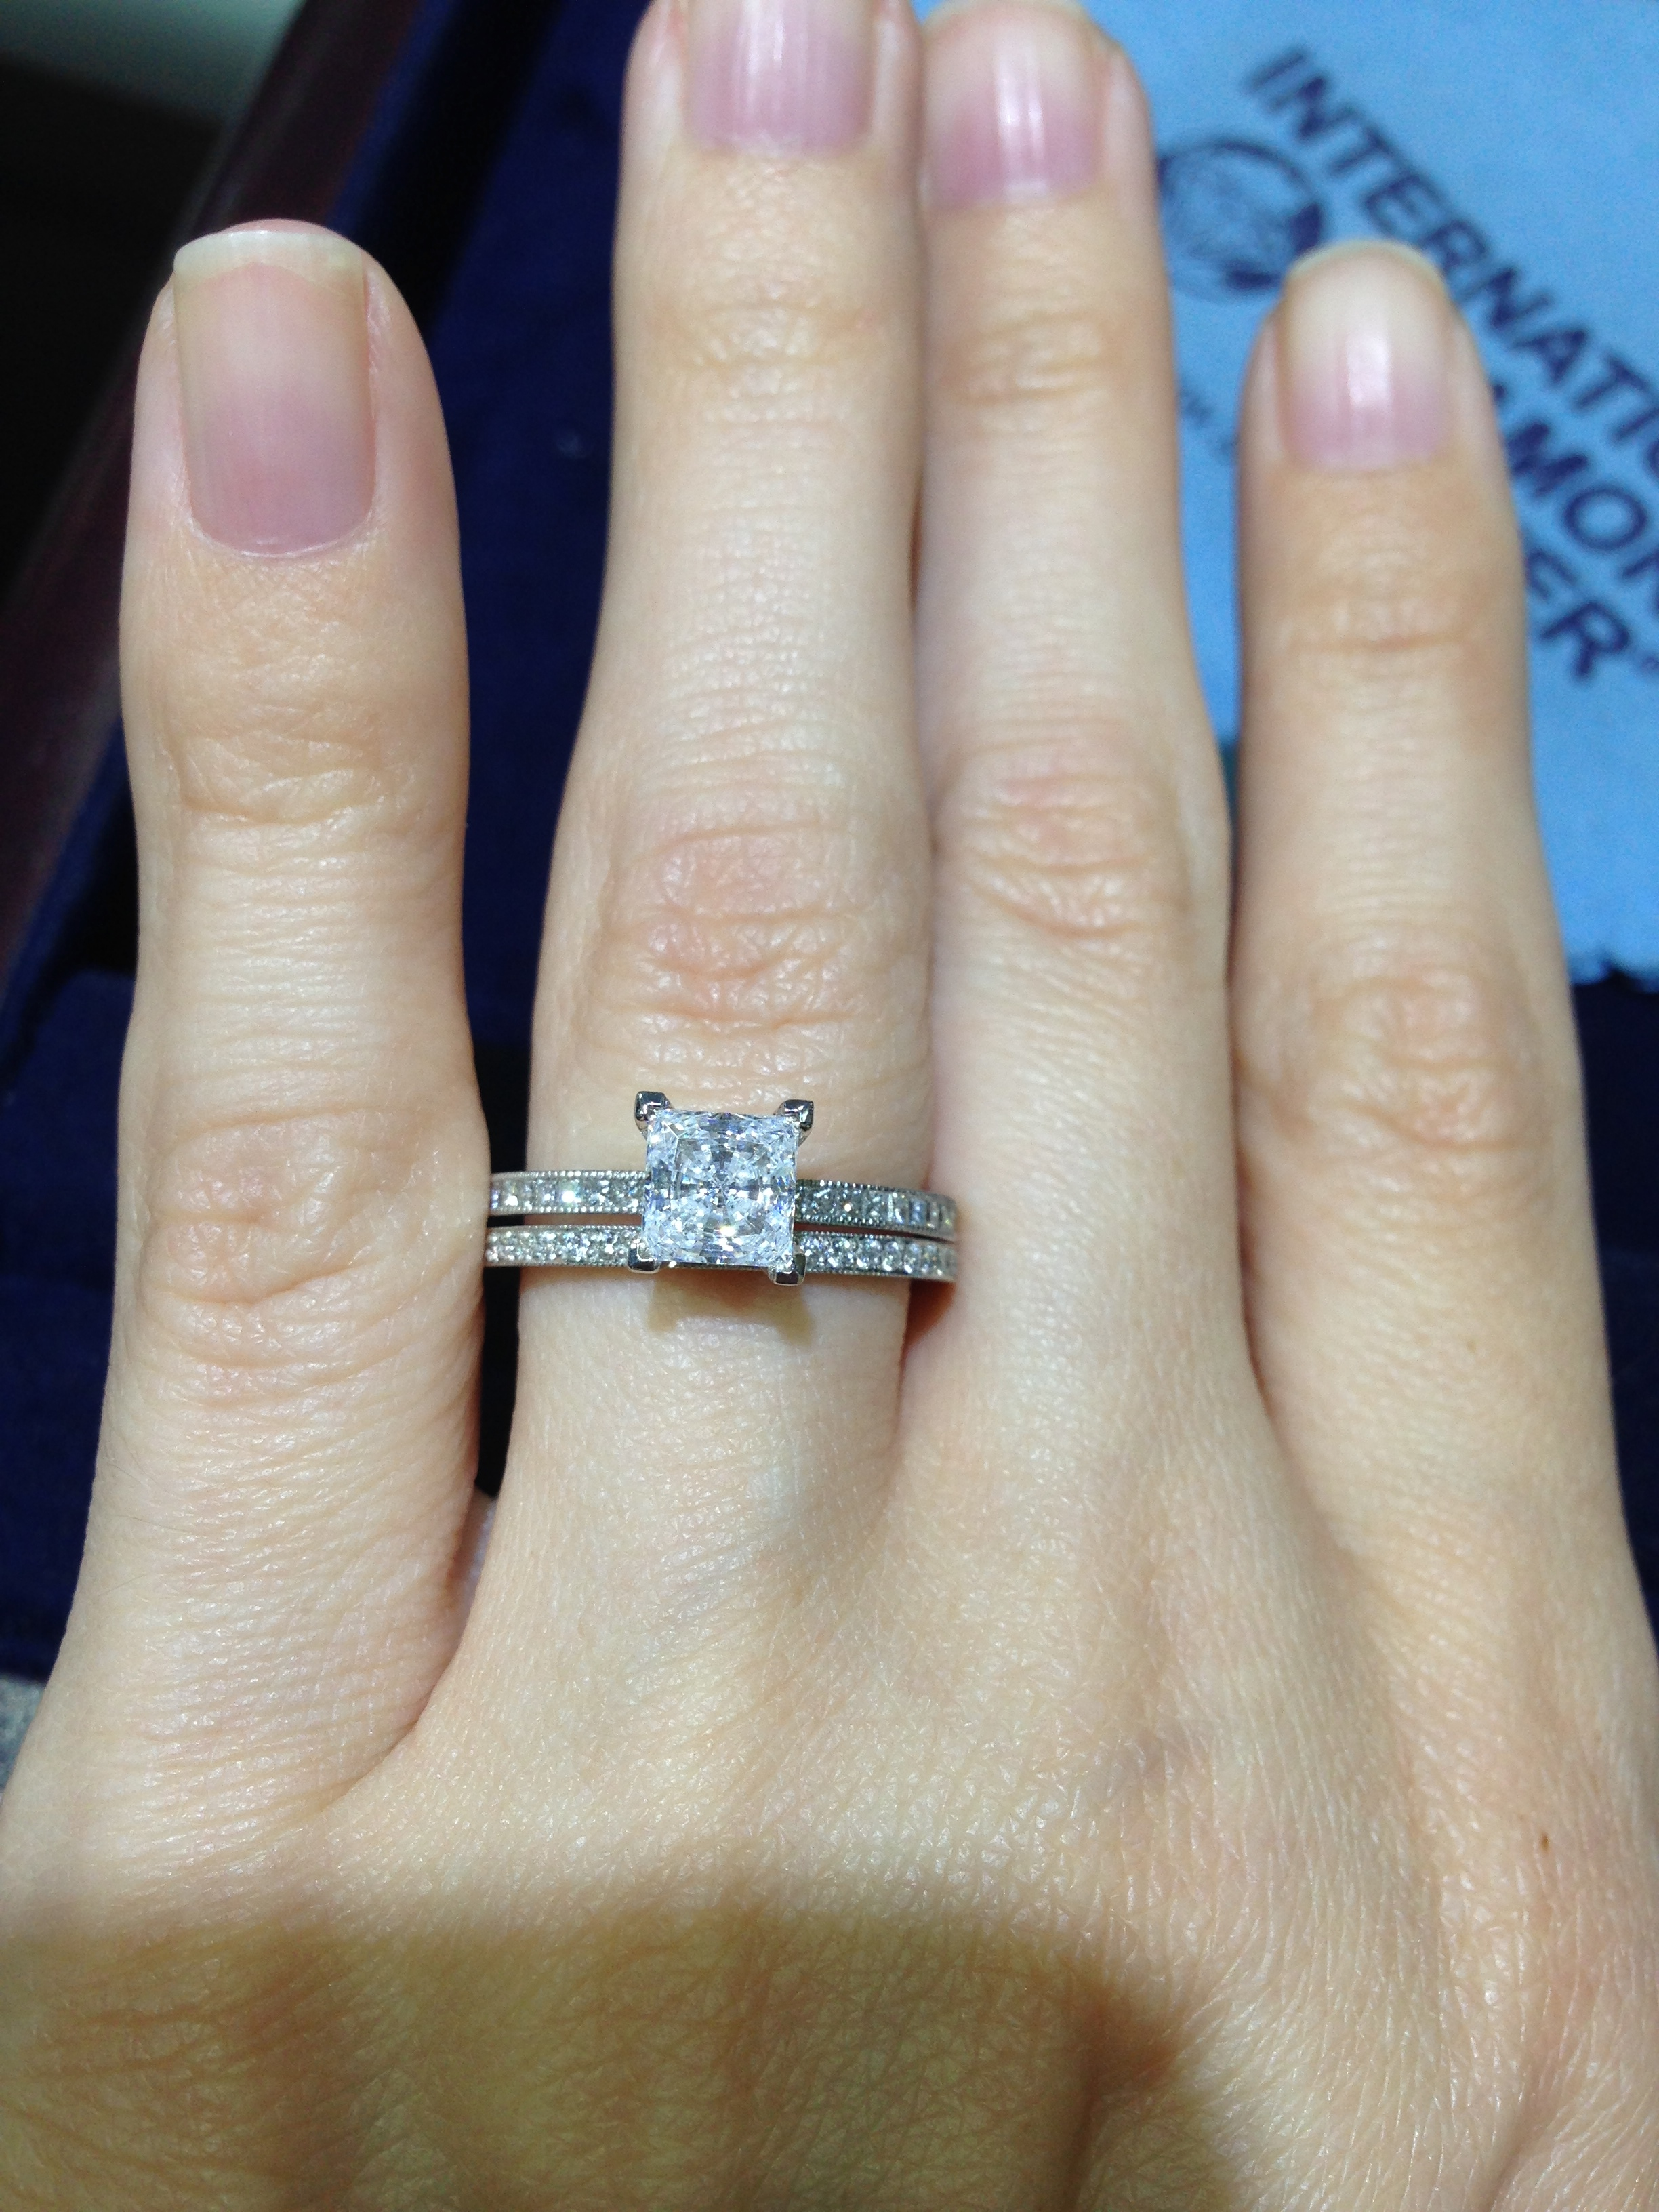 please help i need to find a cheaper ring with a similar look to this tacori tacori wedding band Tagged rings tacori